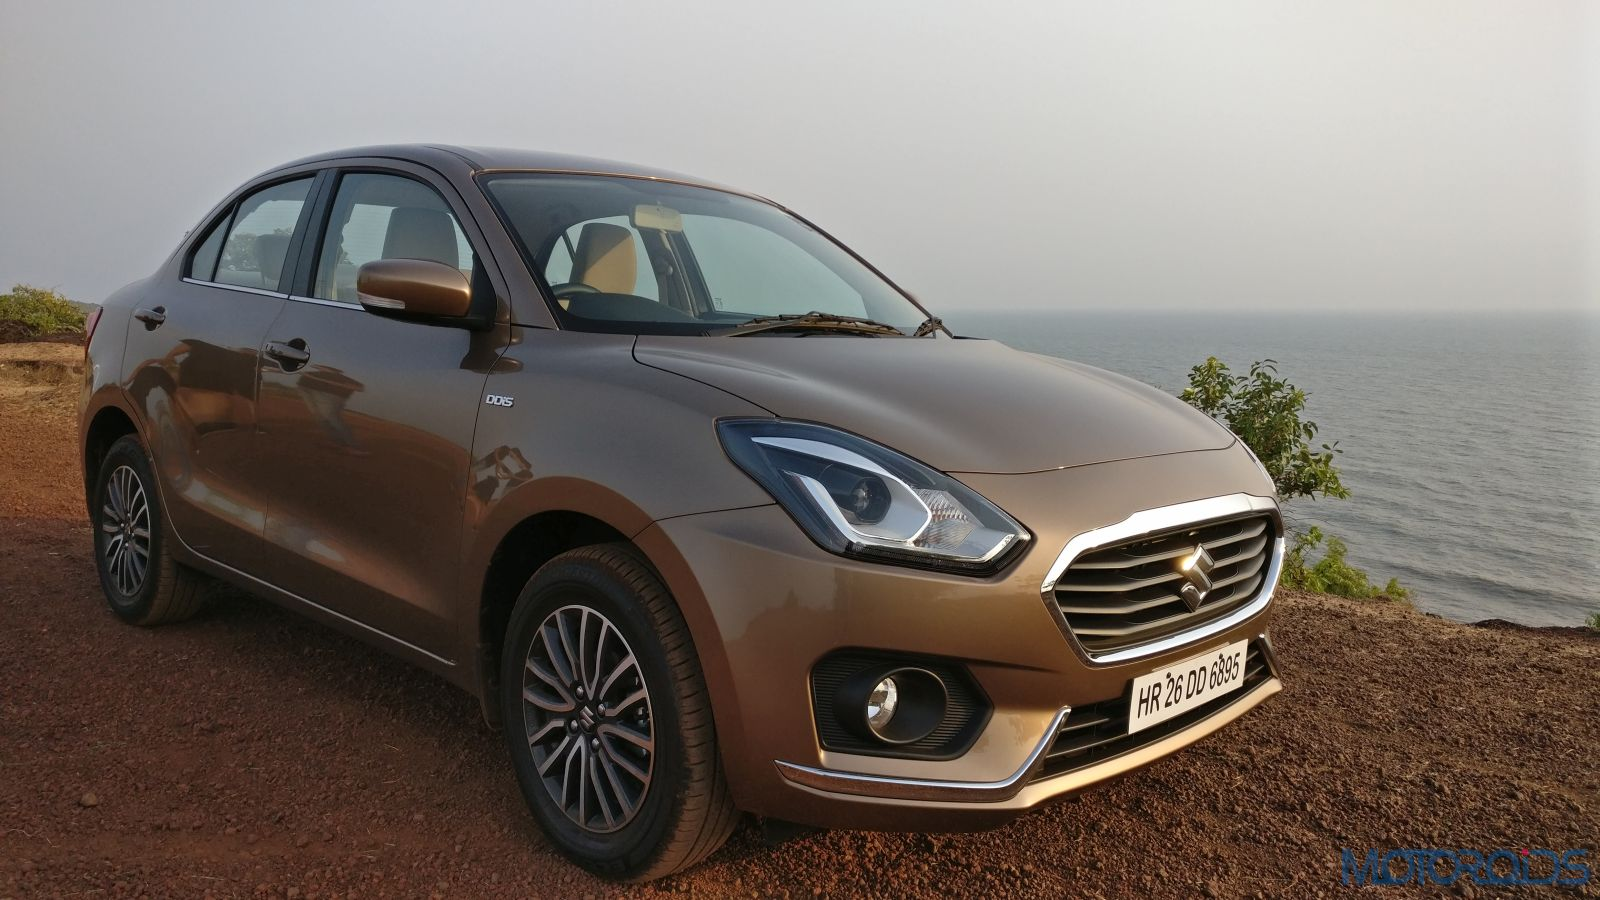 Maruti suzuki car price in india 2017 12